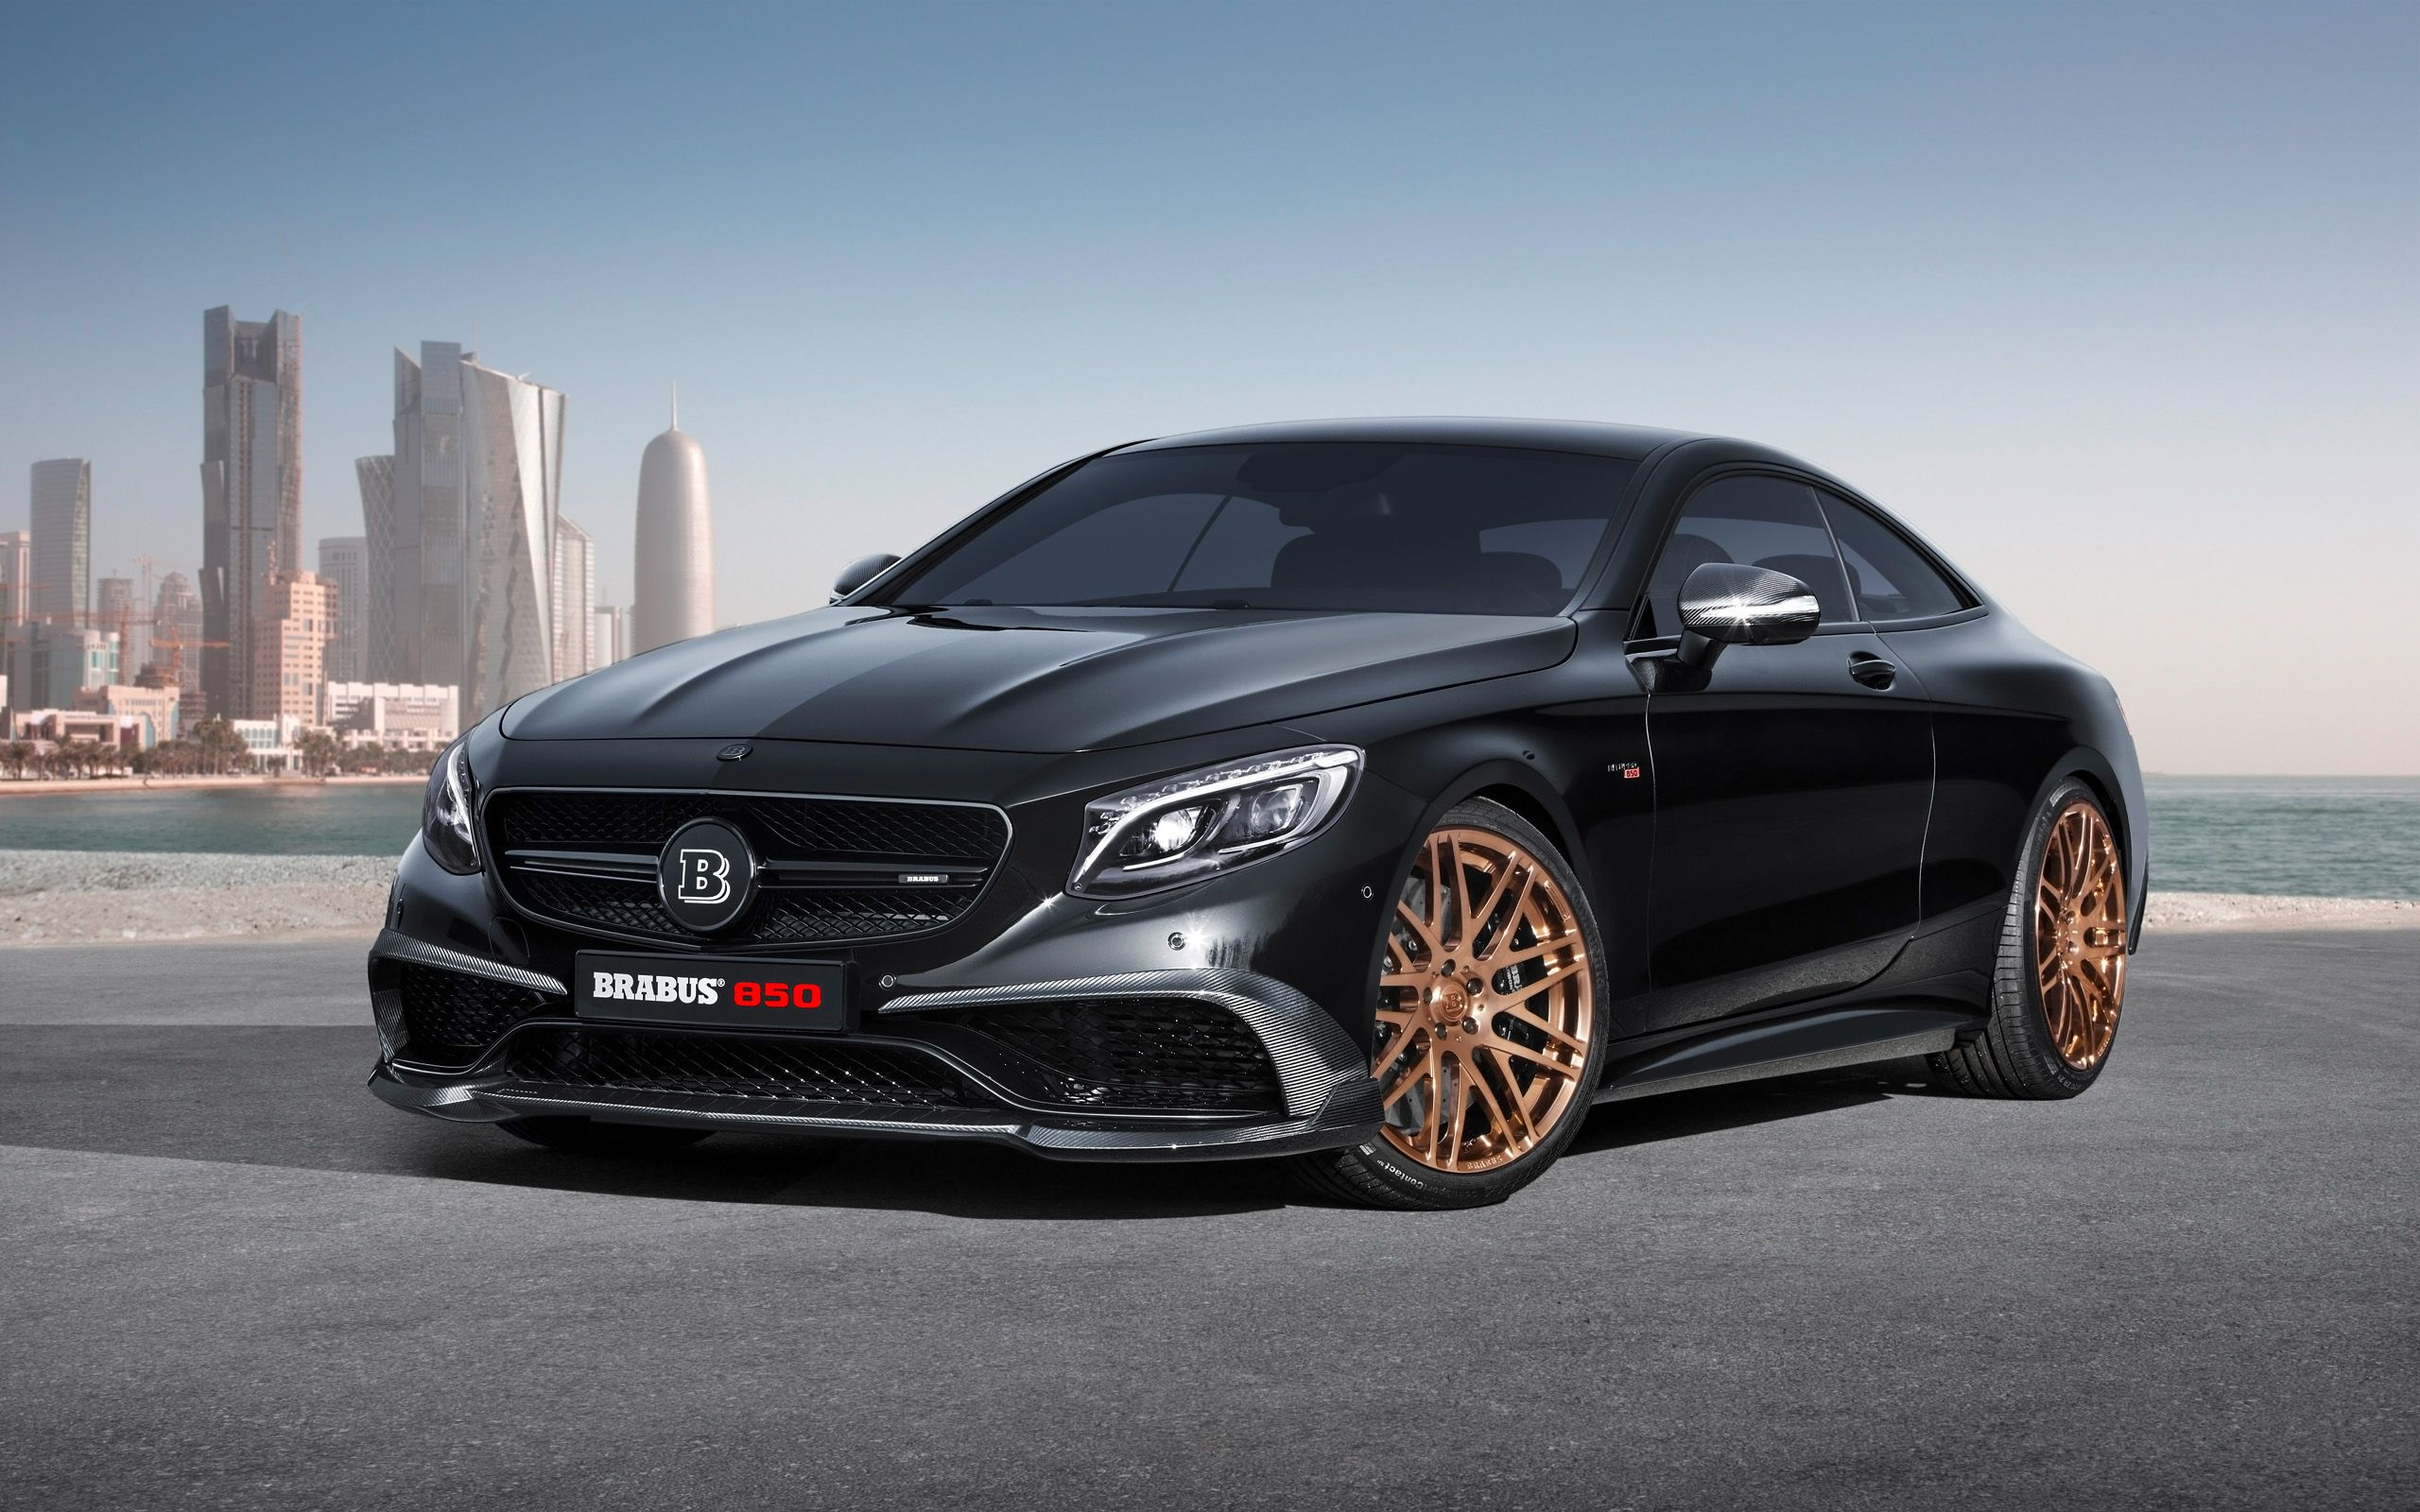 2015 brabus mercedes benz s63 850 biturbo coupe car http www